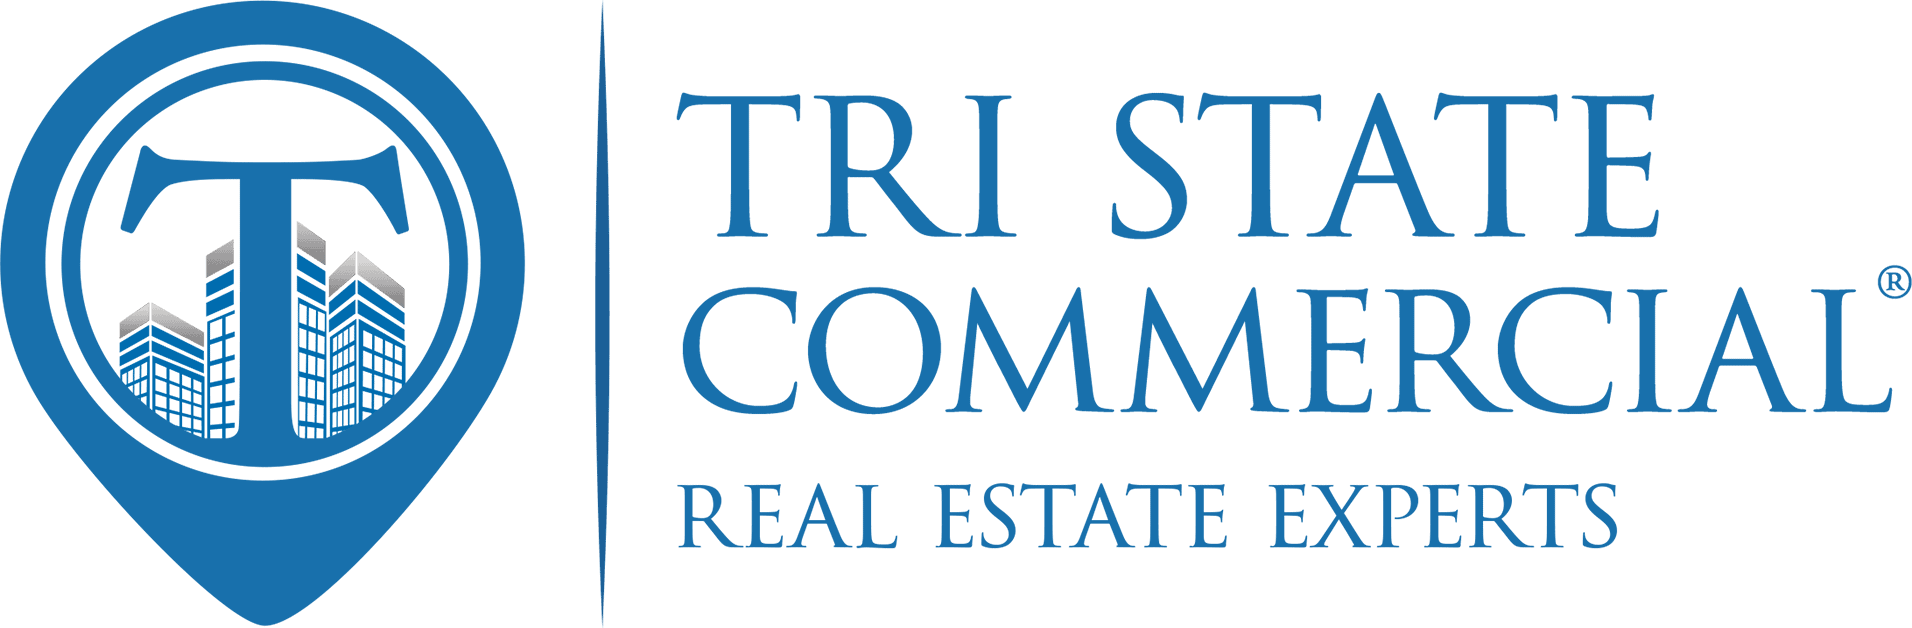 Tri State Commercial Realty logo horizontal 2018